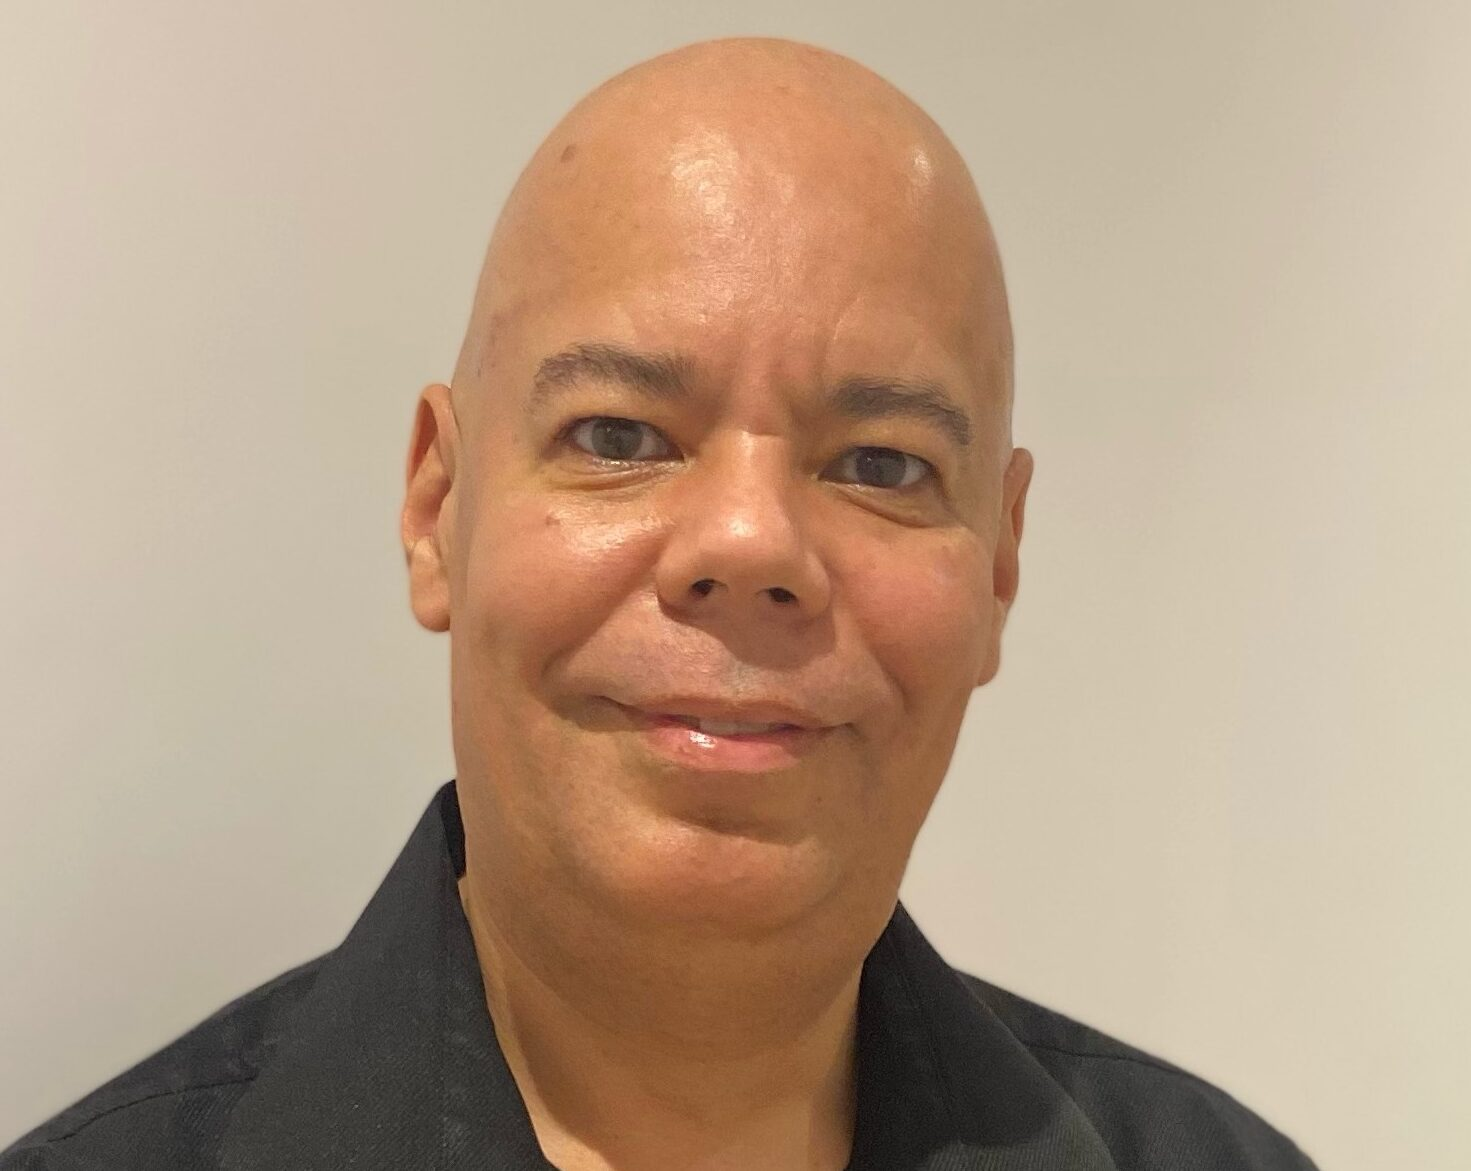 The Voice editor Lester Holloway